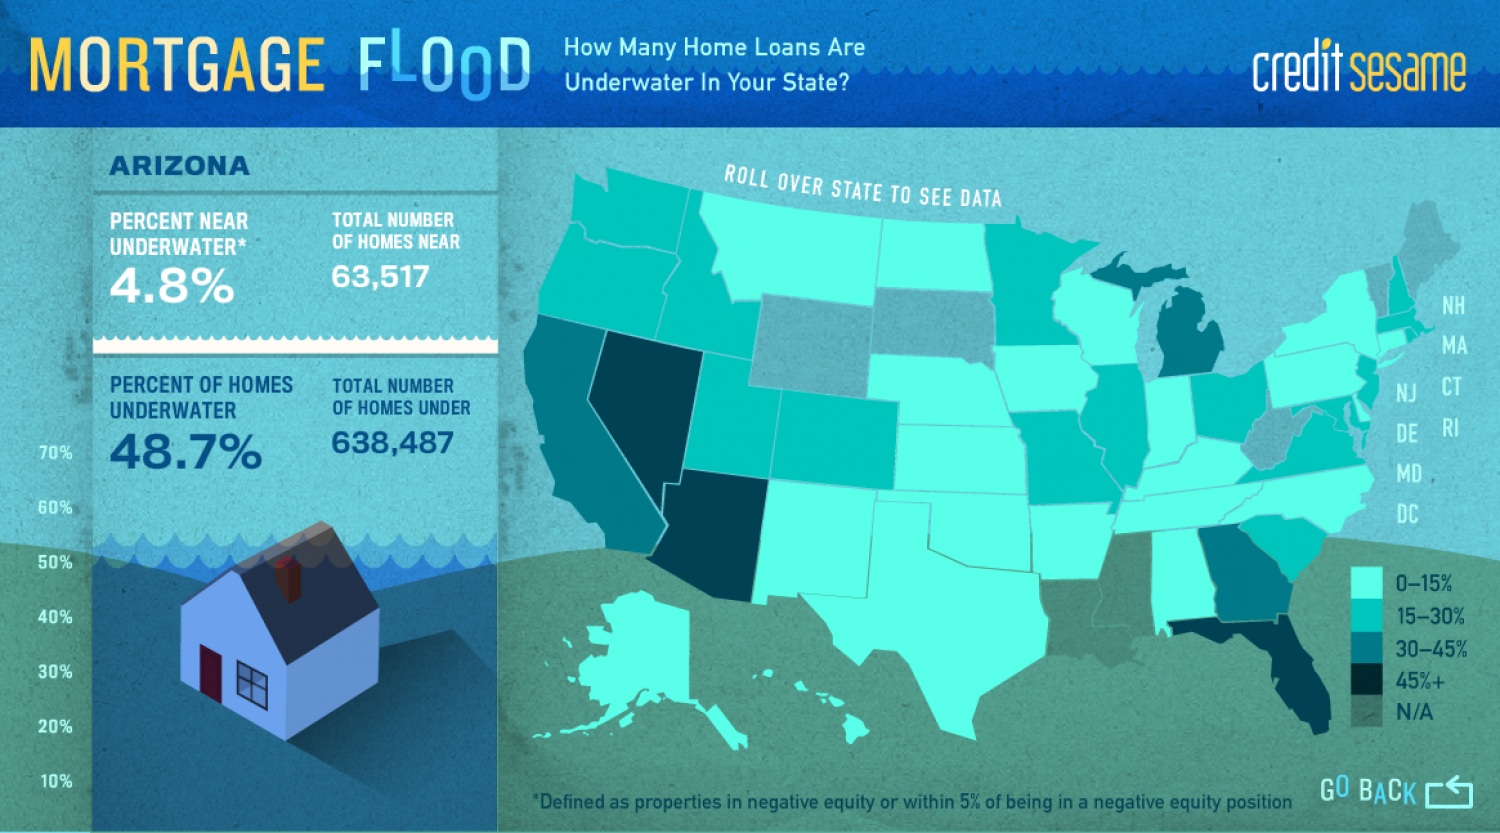 Mortgage Flood: How Many Home Loans Are Underwater In Your State? Infographic